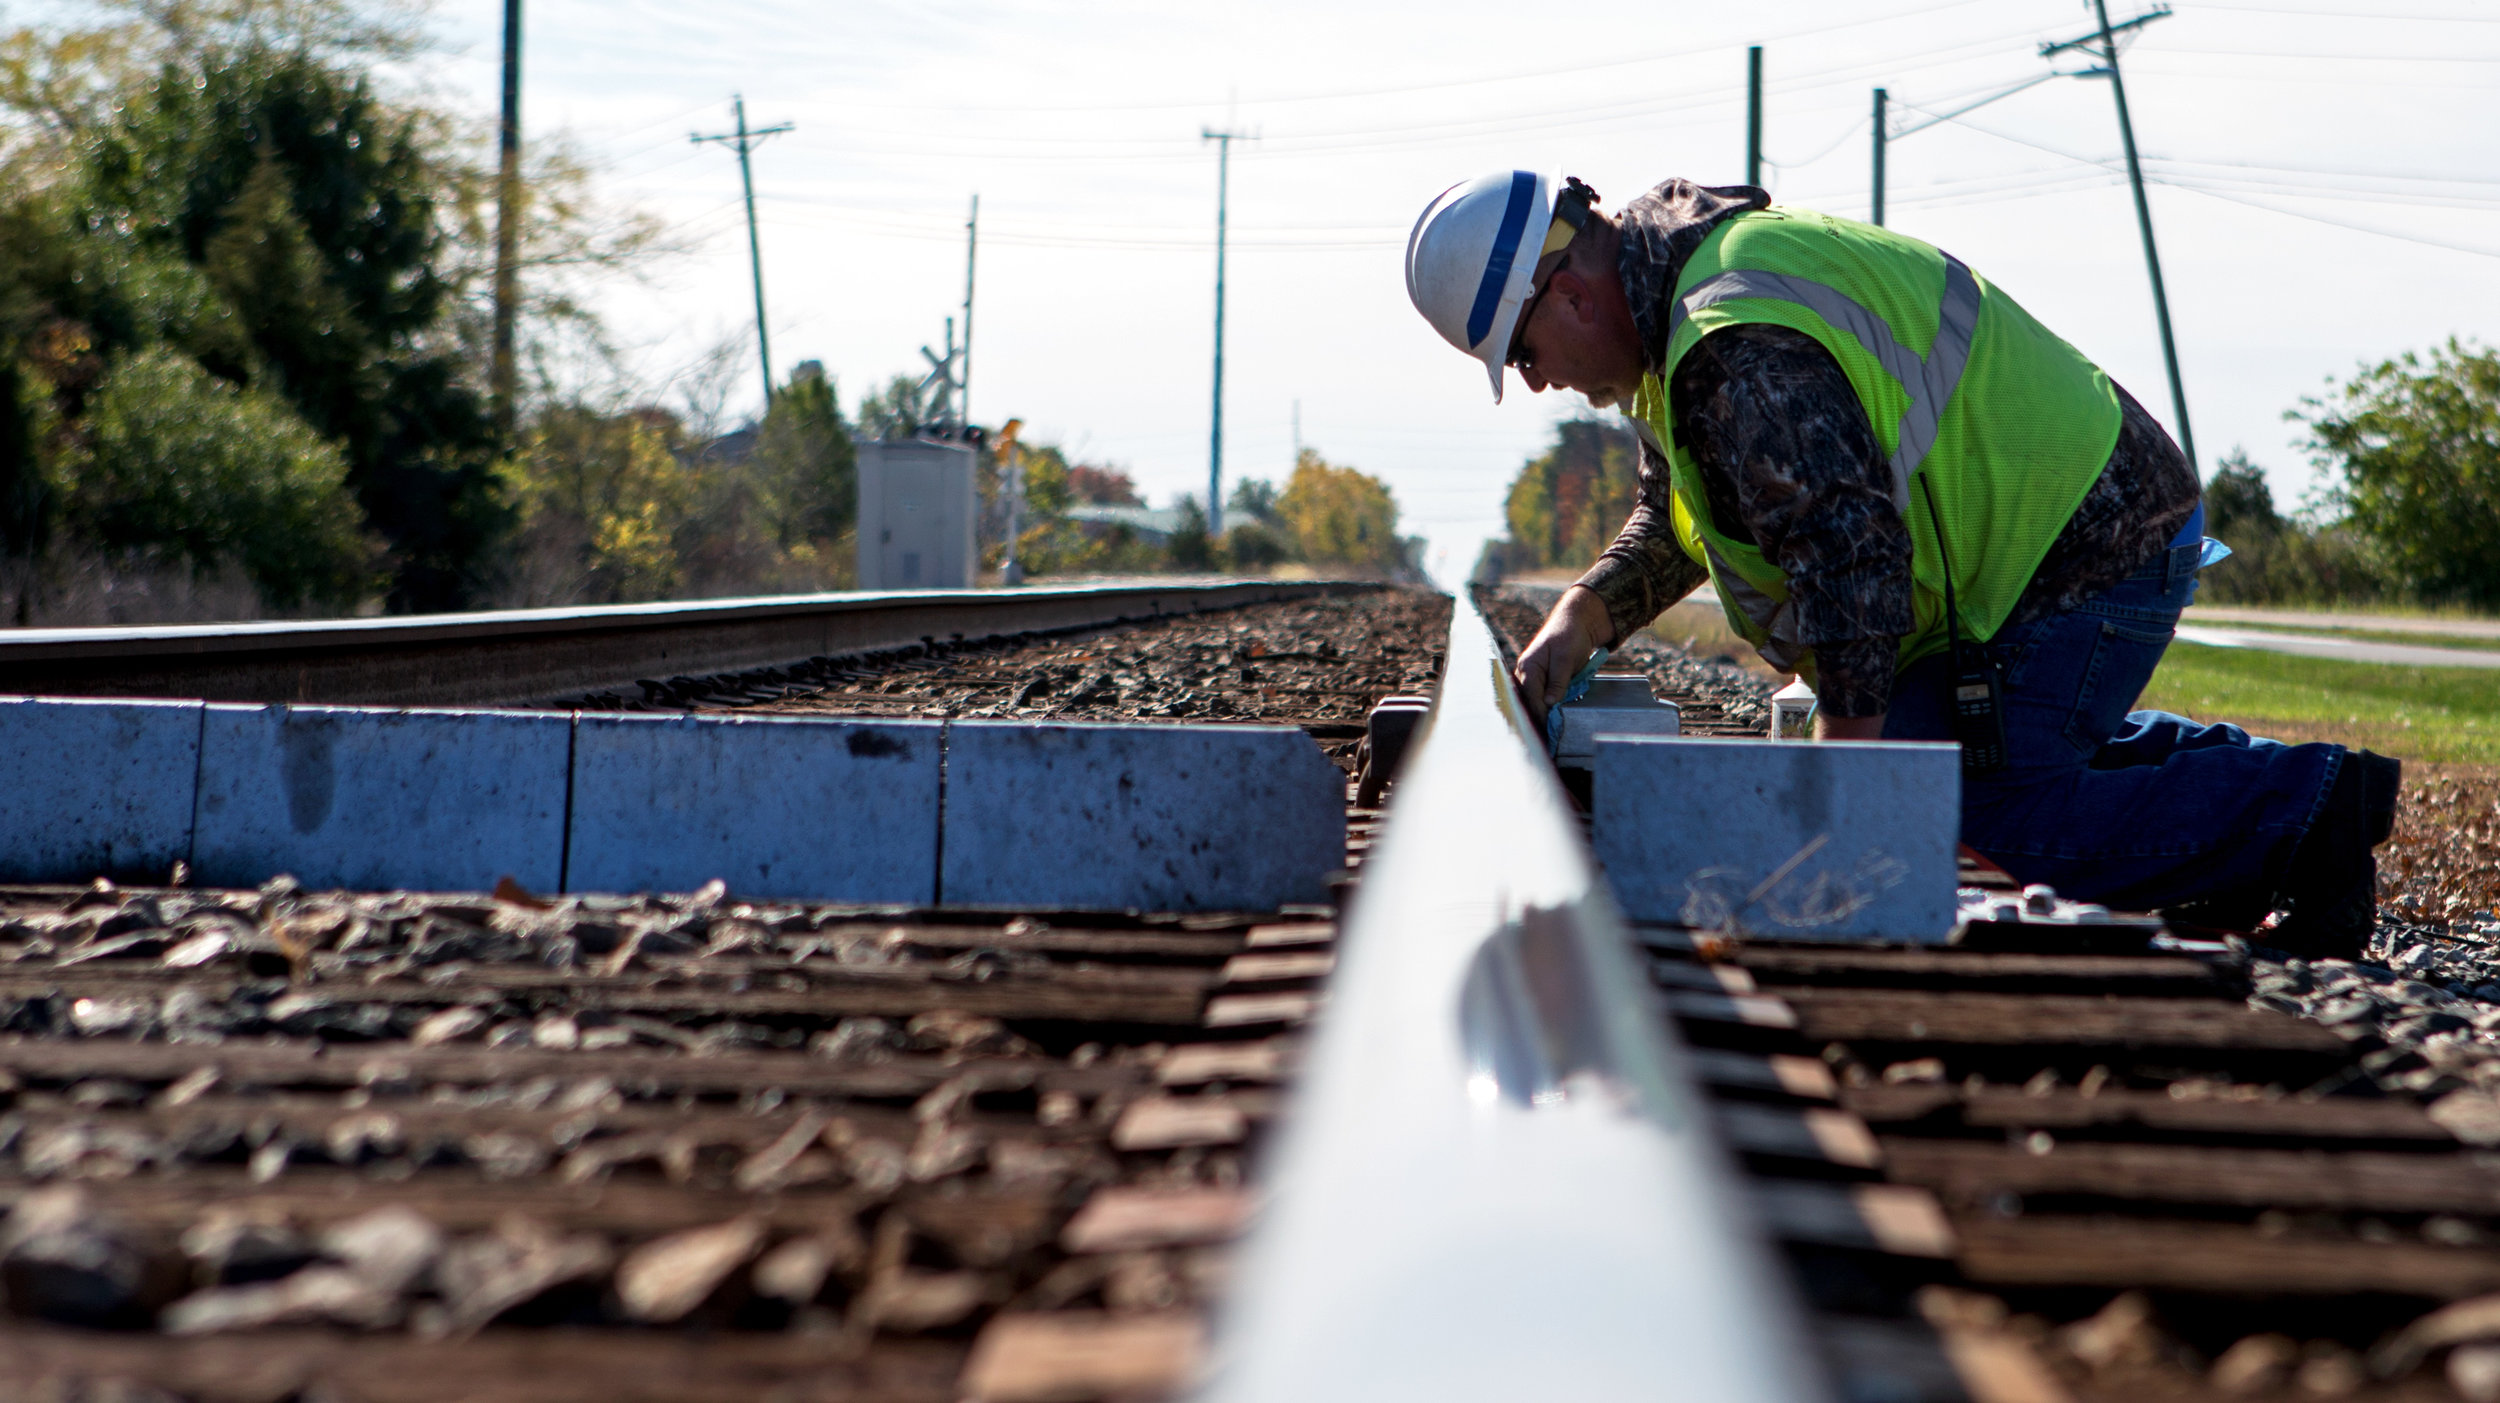 CSX signal maintainer Matt McDonald of Willard, Oh. tests the defect detection device on a section of railroad off of Fort Meigis Rd. near the Little Township Baseball Field in Perrysburg on Tuesday, Oct. 25, 2016. The defect detection system reads temperatures and detects anything dragging from train cars as they pass and notifies the headquarters and dispatch of any malfunctions.